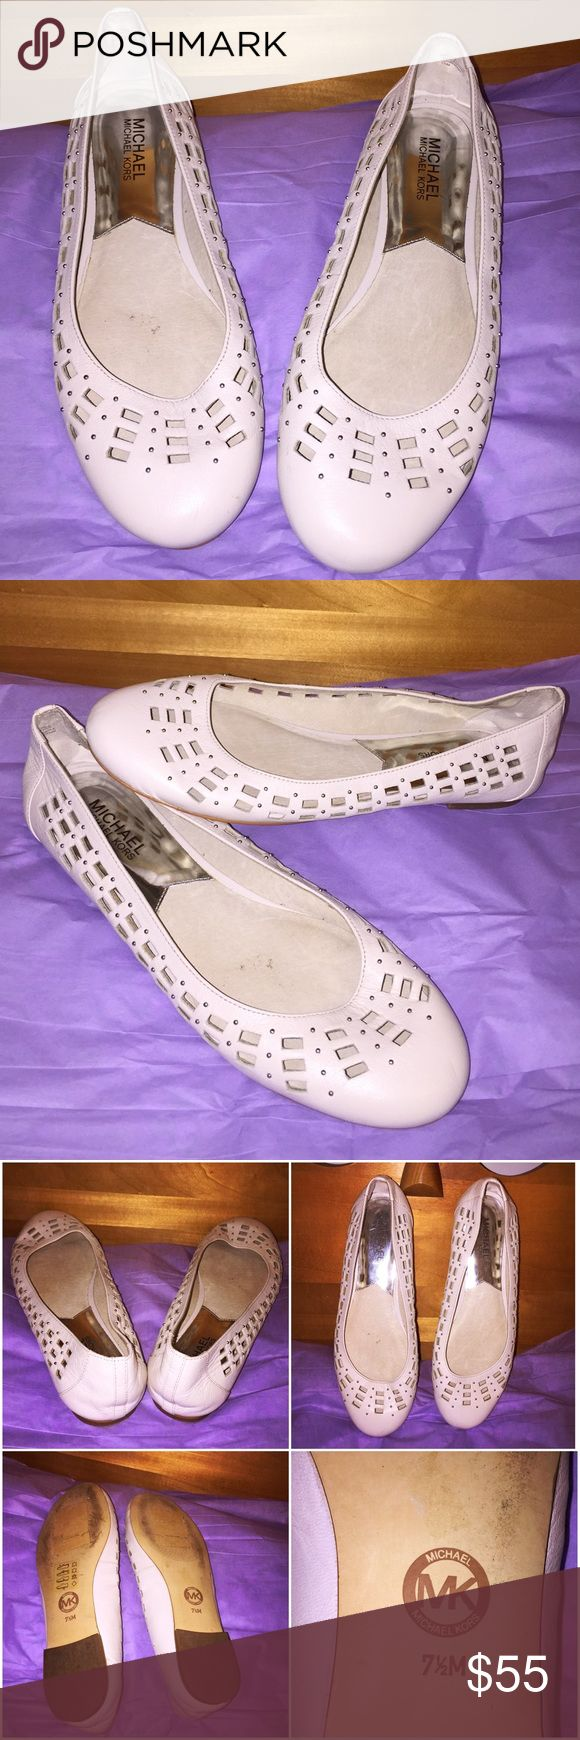 Michael Kors White/Cream Ballet Flats In great conditions. White/cream Micheal Kors ballet slippers. White Leather upper decorated with silver rounded studs. Very cute. Comfortable for walking. Gently used. No visible damage. Minimal wear to sole. Michael Kors Shoes Flats & Loafers